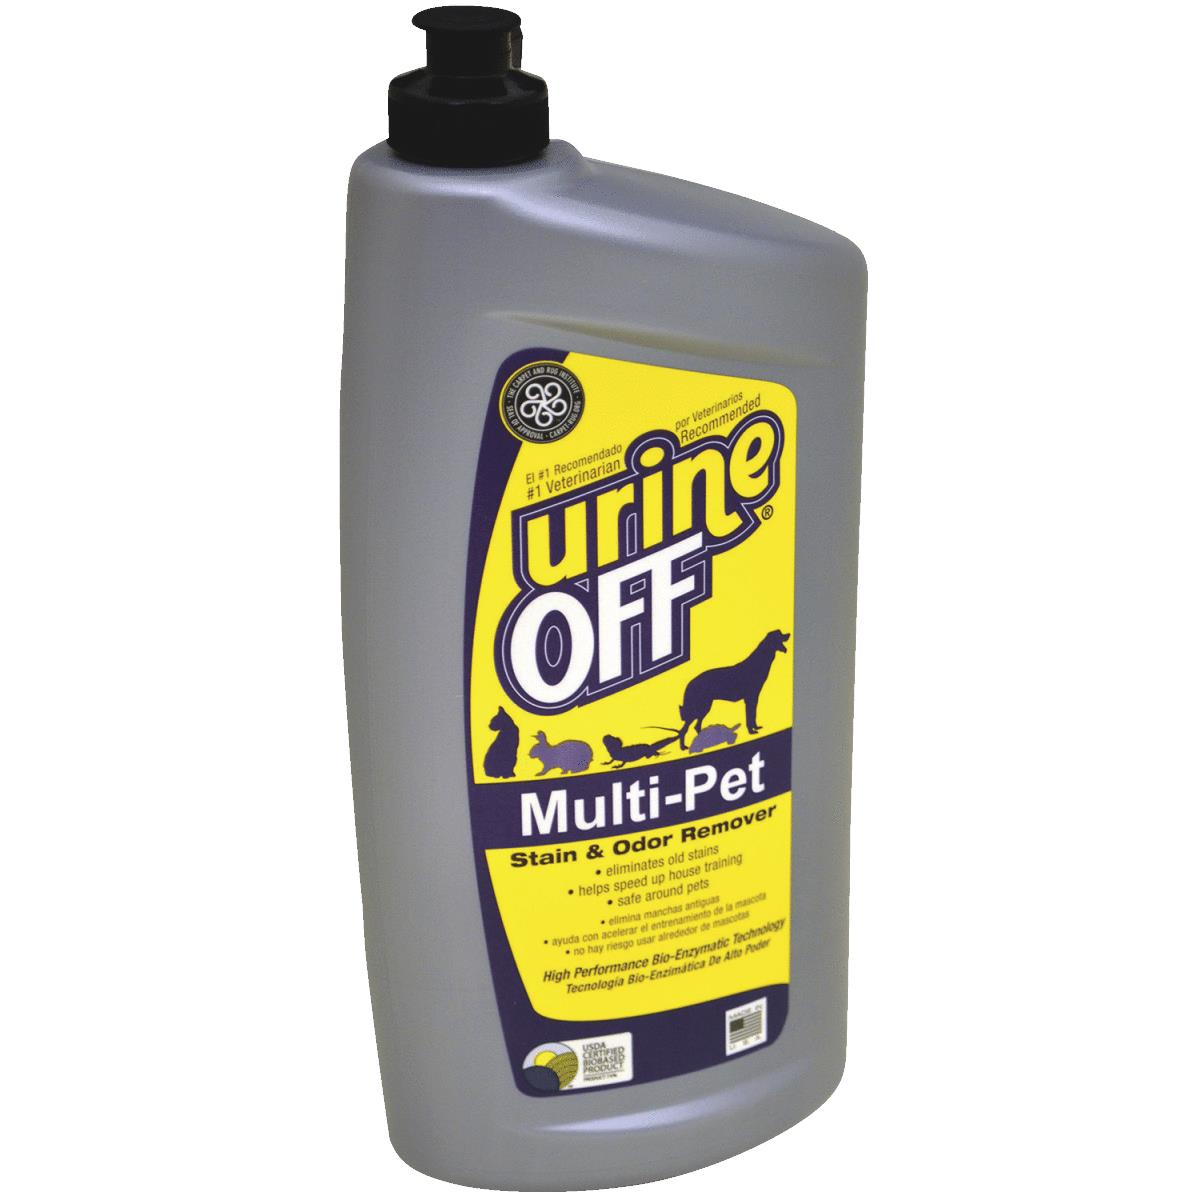 Dog Urine Carpet Stain Removal: Buy Urine Off Multi-Pet Stain & Odor Remover 32 Oz